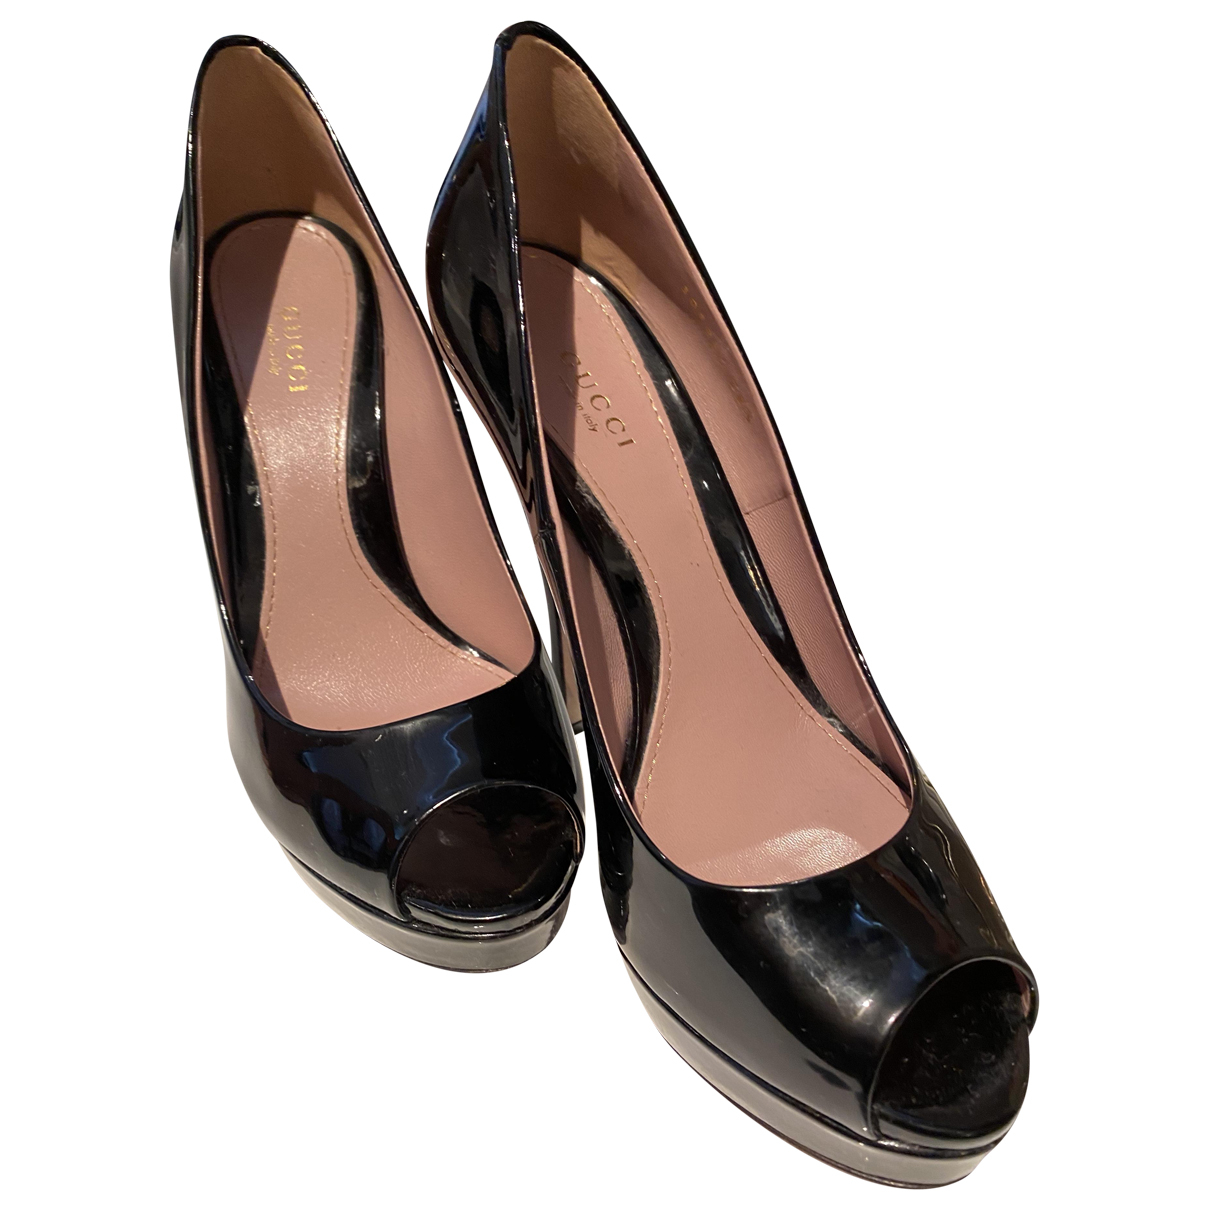 Gucci \N Black Patent leather Heels for Women 38.5 EU